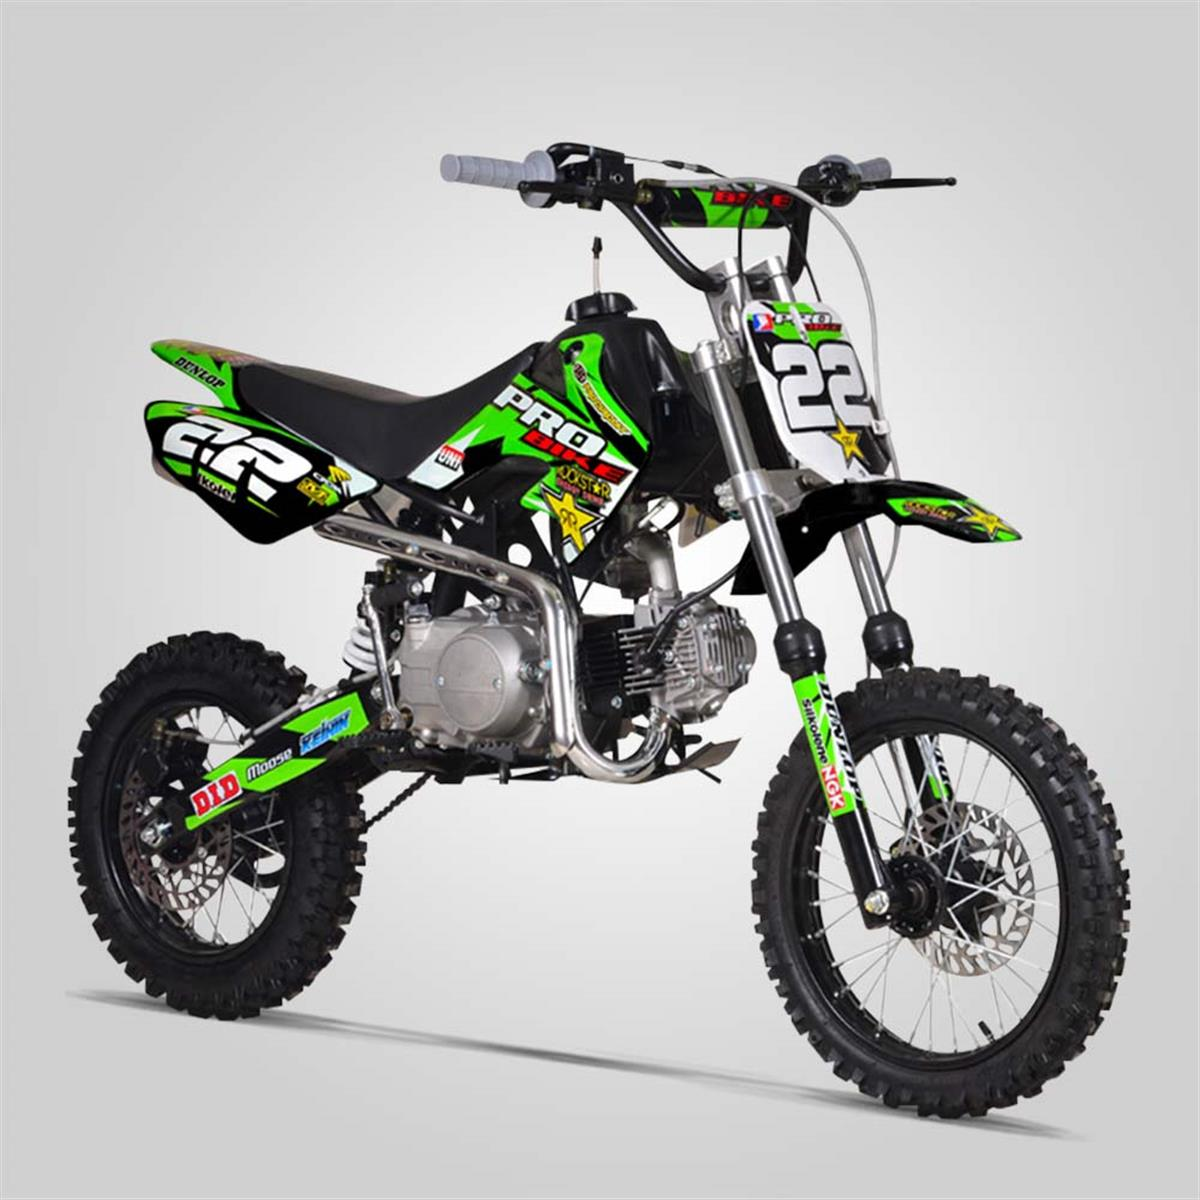 dirt bike probike 110cc semi auto noir 2017 smallmx dirt bike pit bike quads minimoto. Black Bedroom Furniture Sets. Home Design Ideas